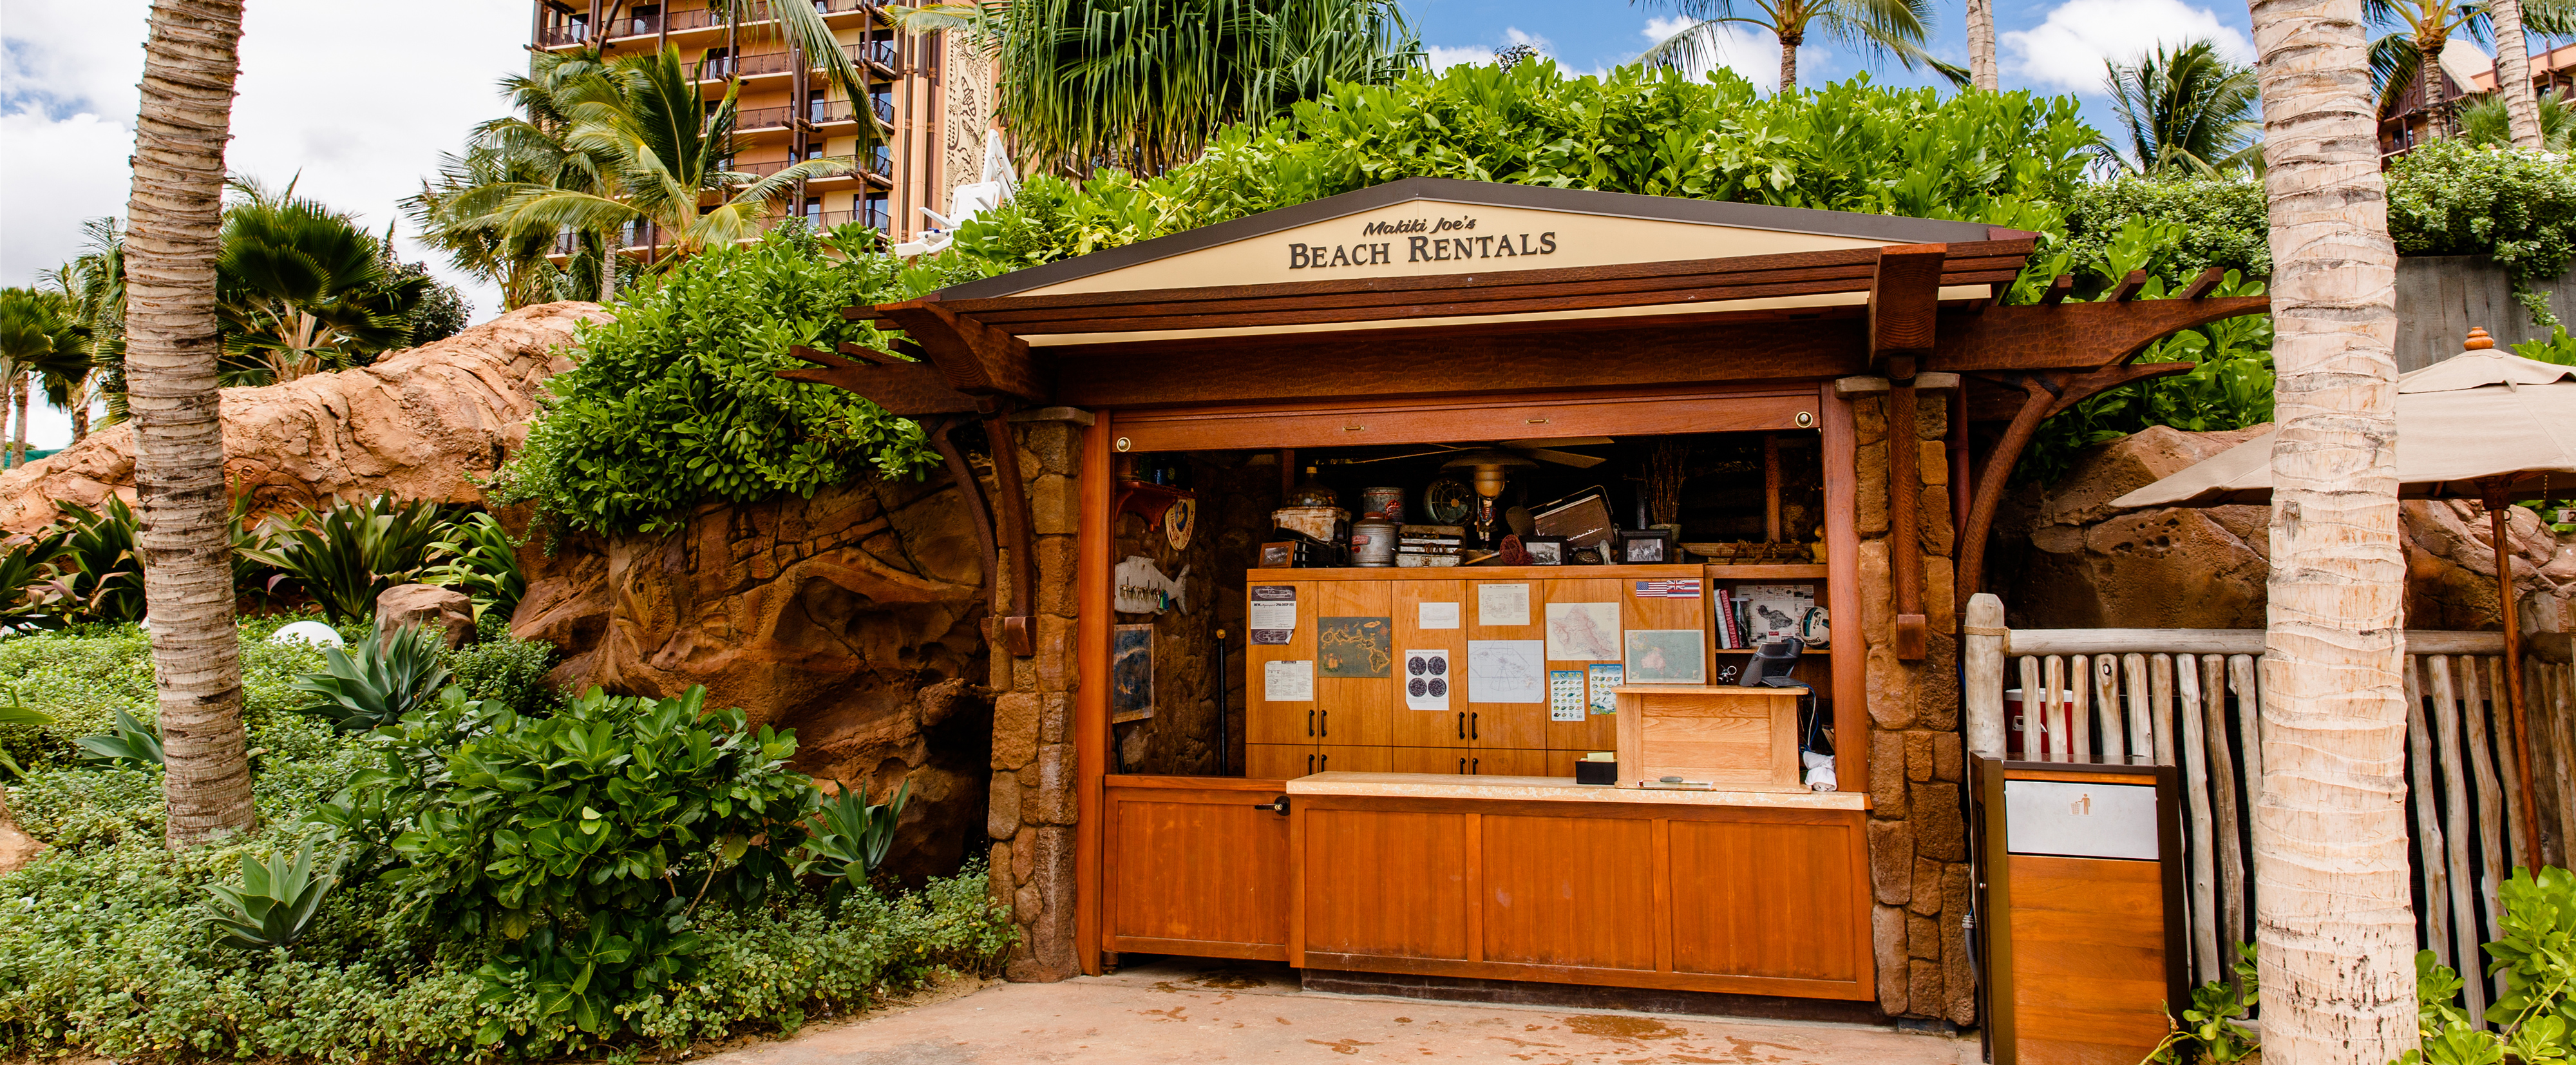 Oahu beach chair rental hawaii beach time - The Exterior Of Makiki Joe S Beach Rentals A Wooden Shack Nestled In Trees And Shrubbery